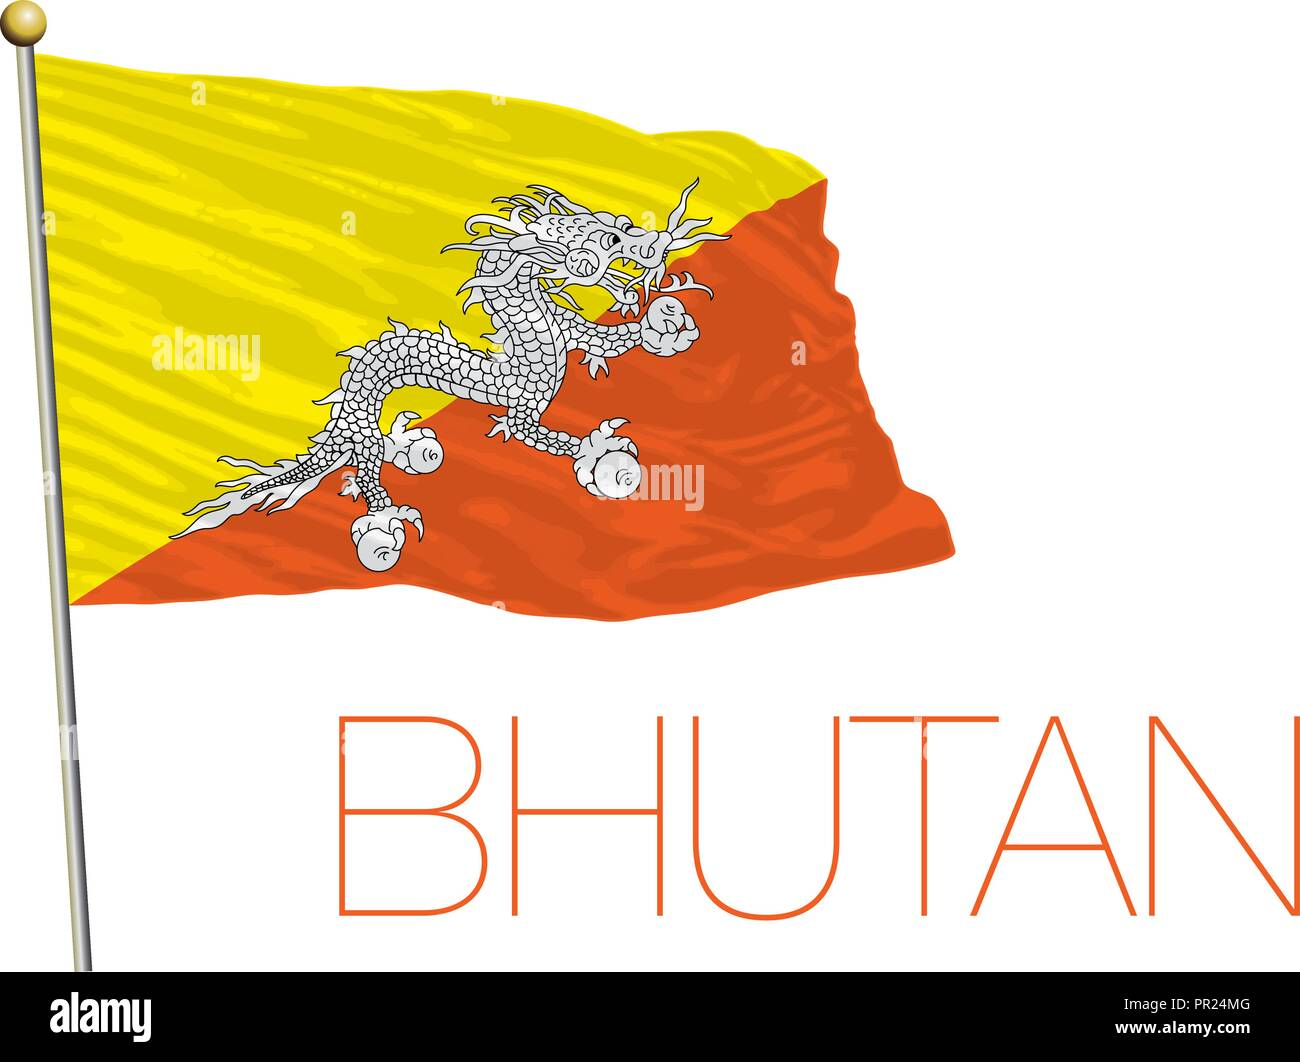 Buthan flag, vector illustration - Stock Vector